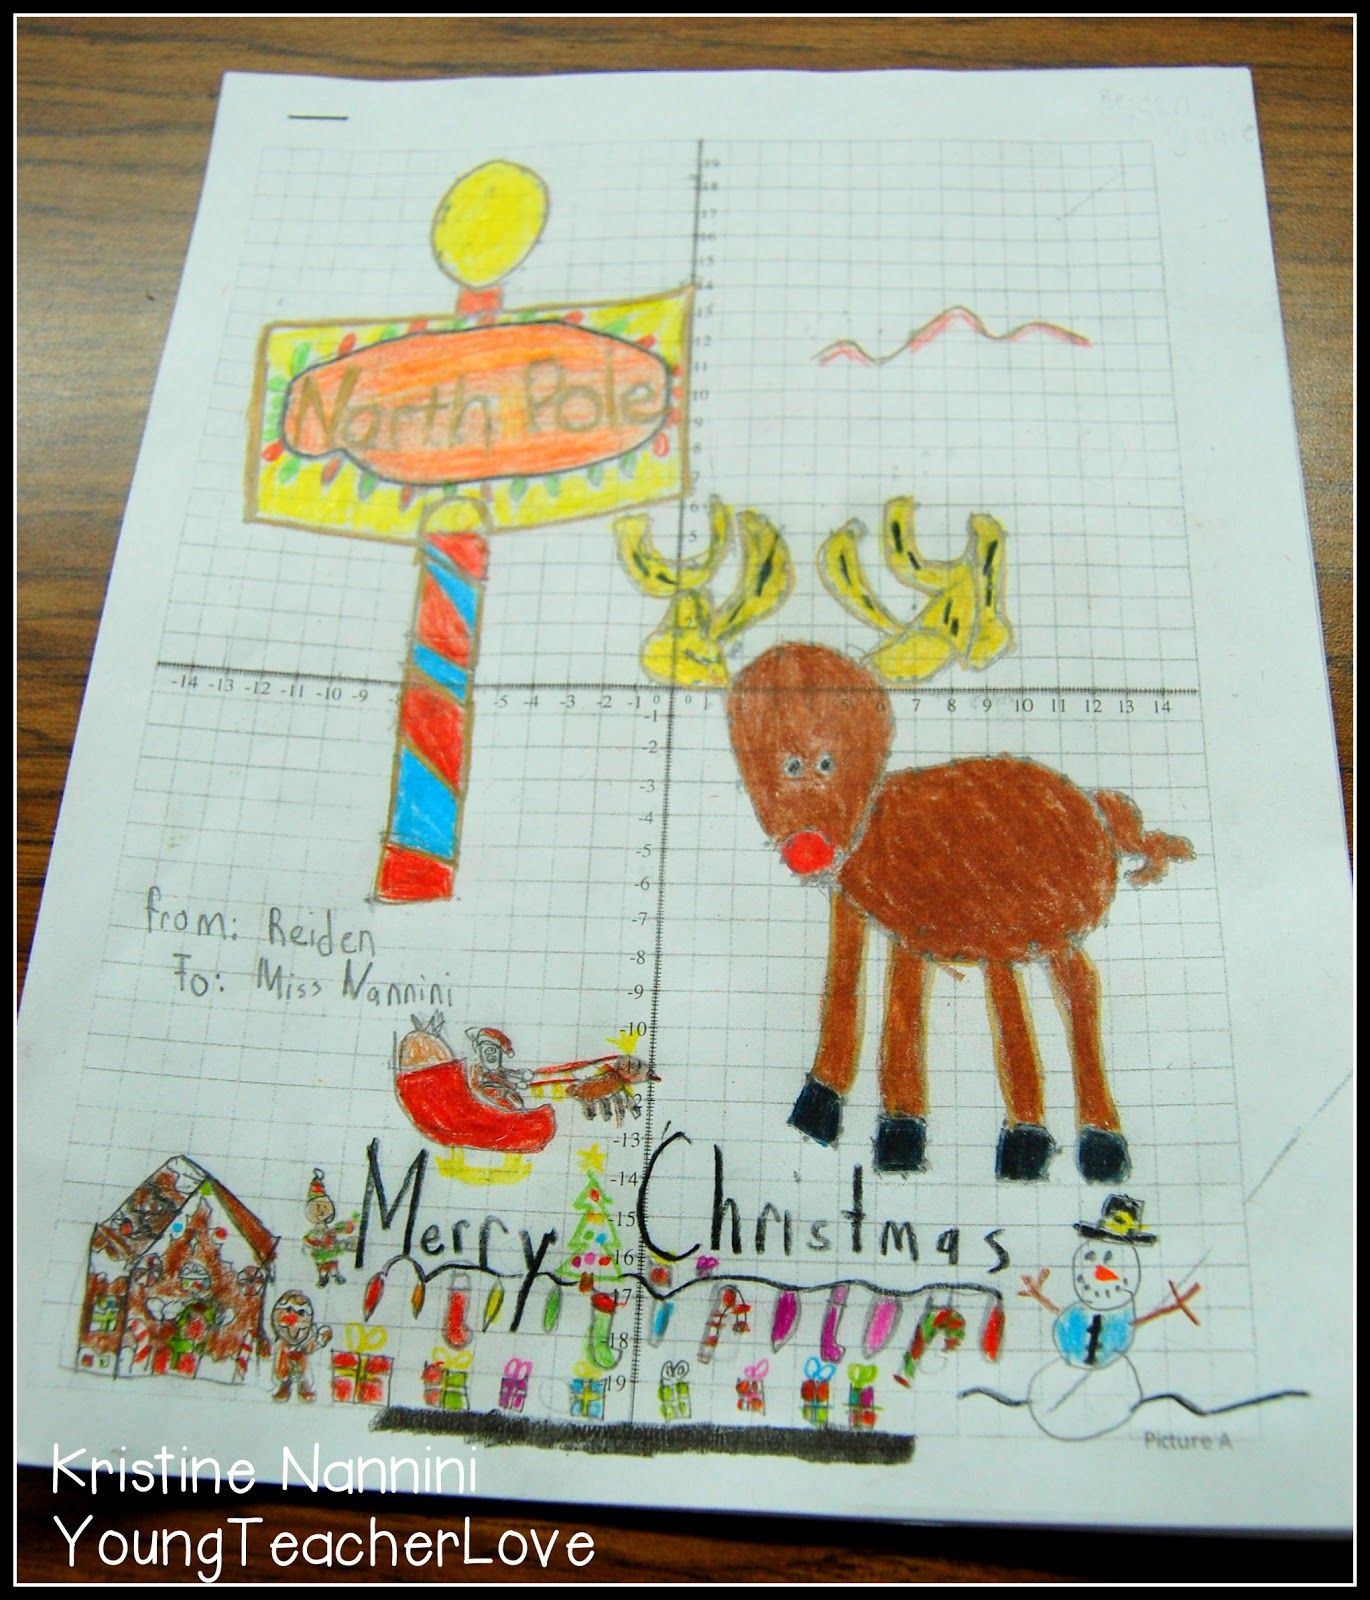 worksheet Winter Coordinate Graphing winter coordinate graphing basic subtraction facts worksheets coordinated graph north pole ho christmas stuff 1f0bc3bf4b5f3a253c195021d73f3e28 358106607841580049 graphing